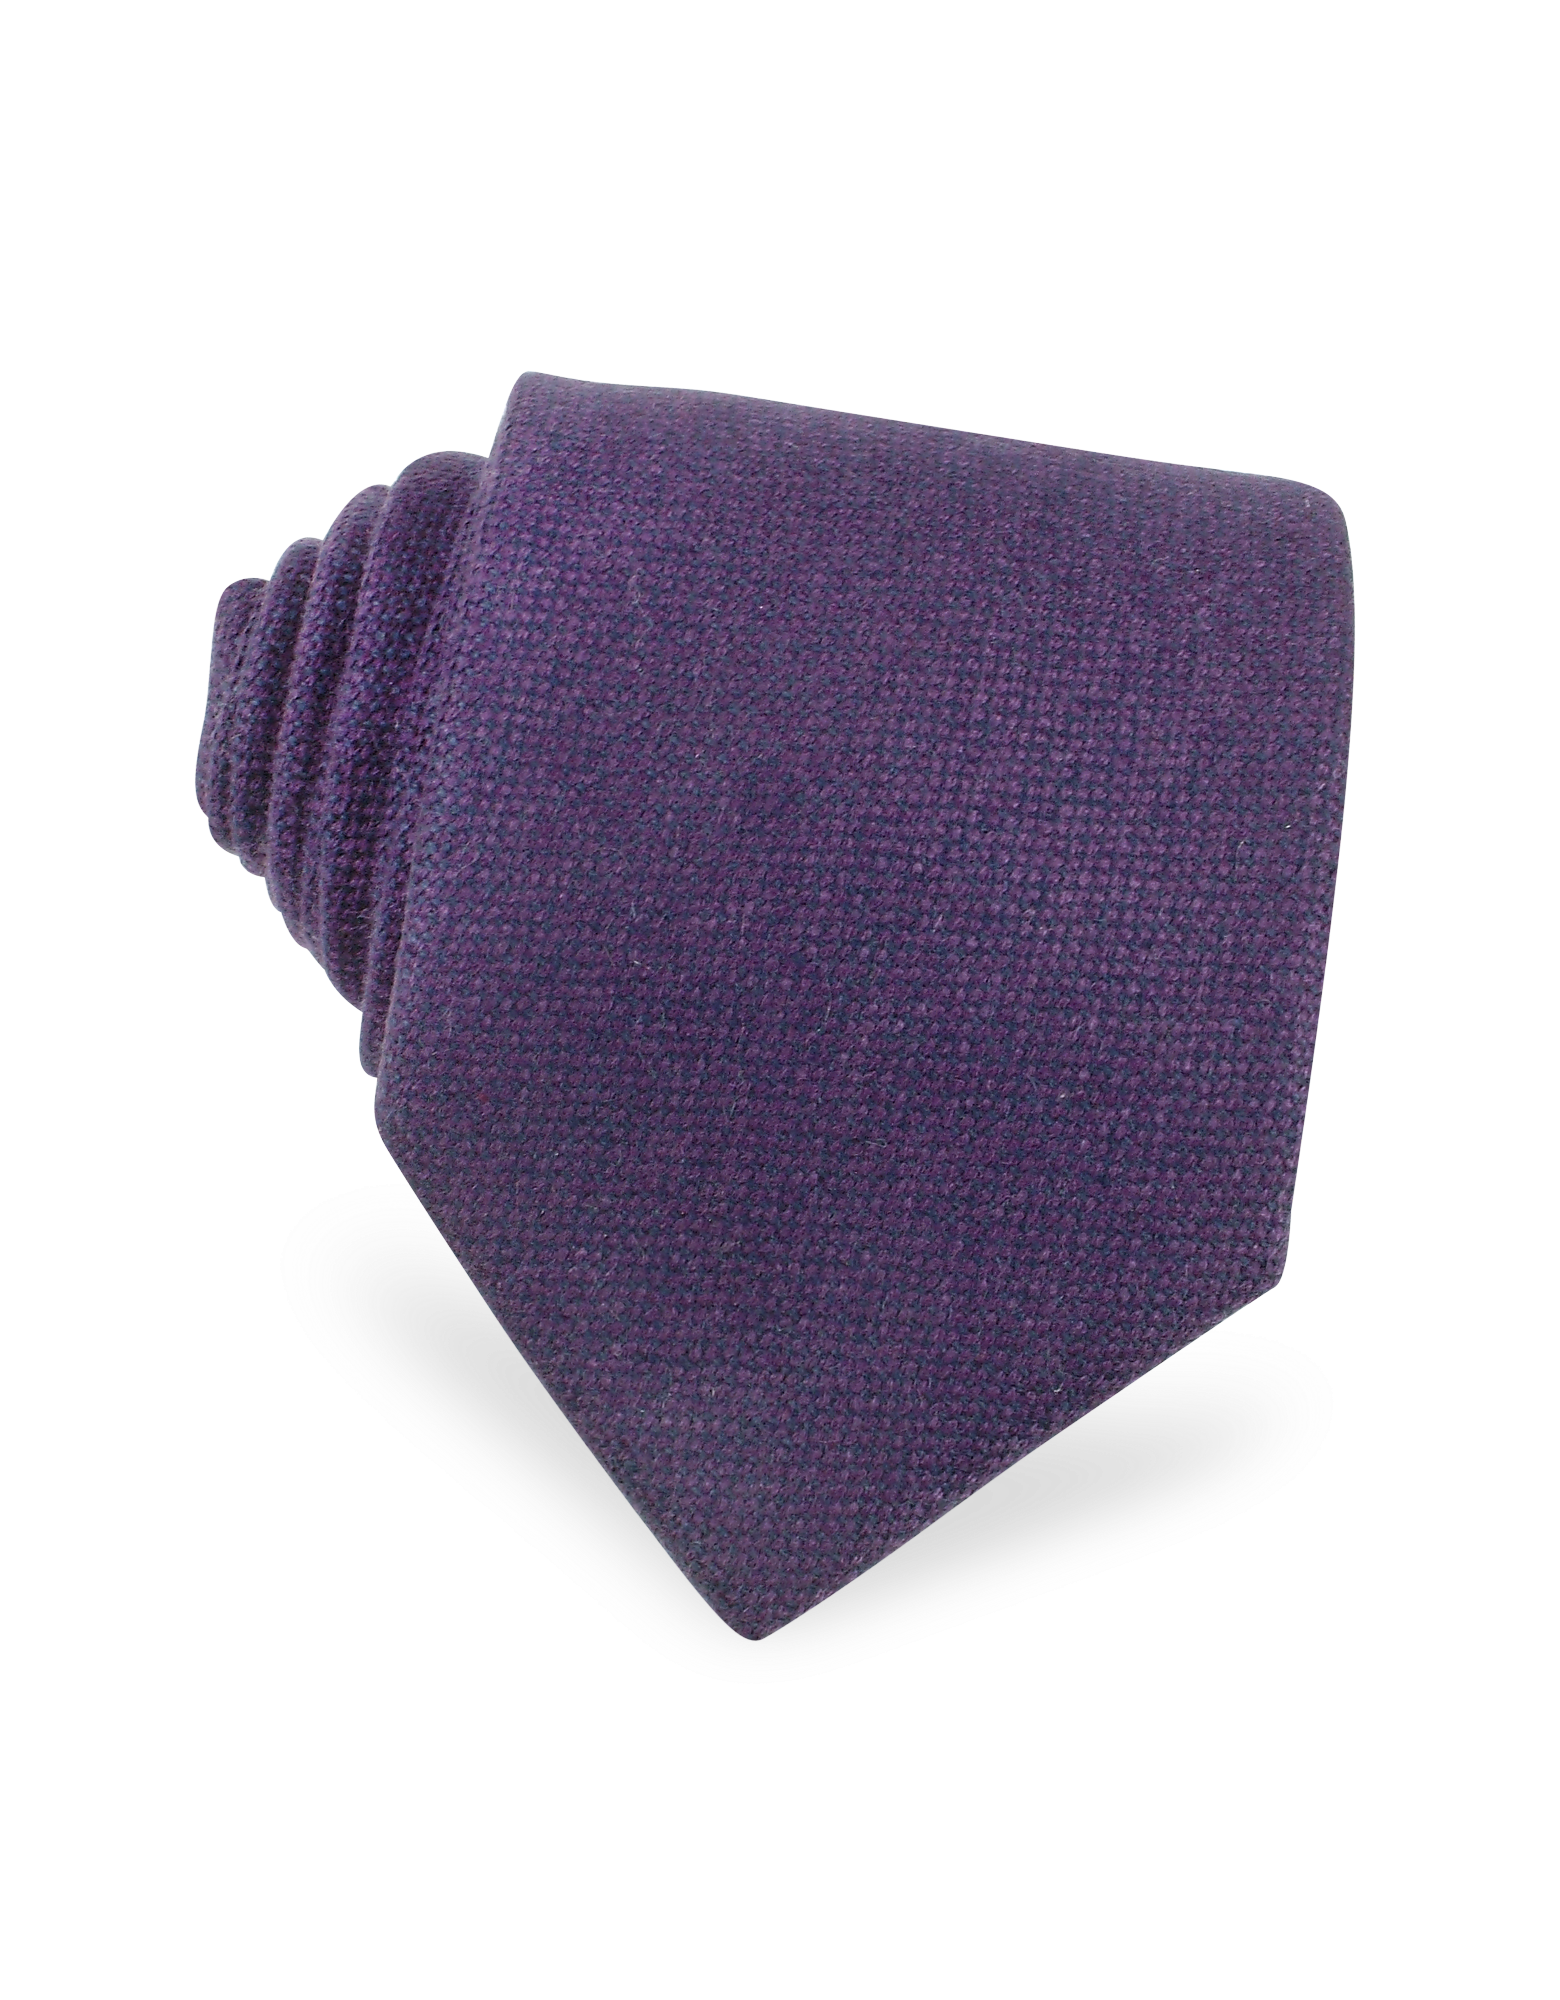 Image of Solid Purple Cashmere Extra-Long Tie